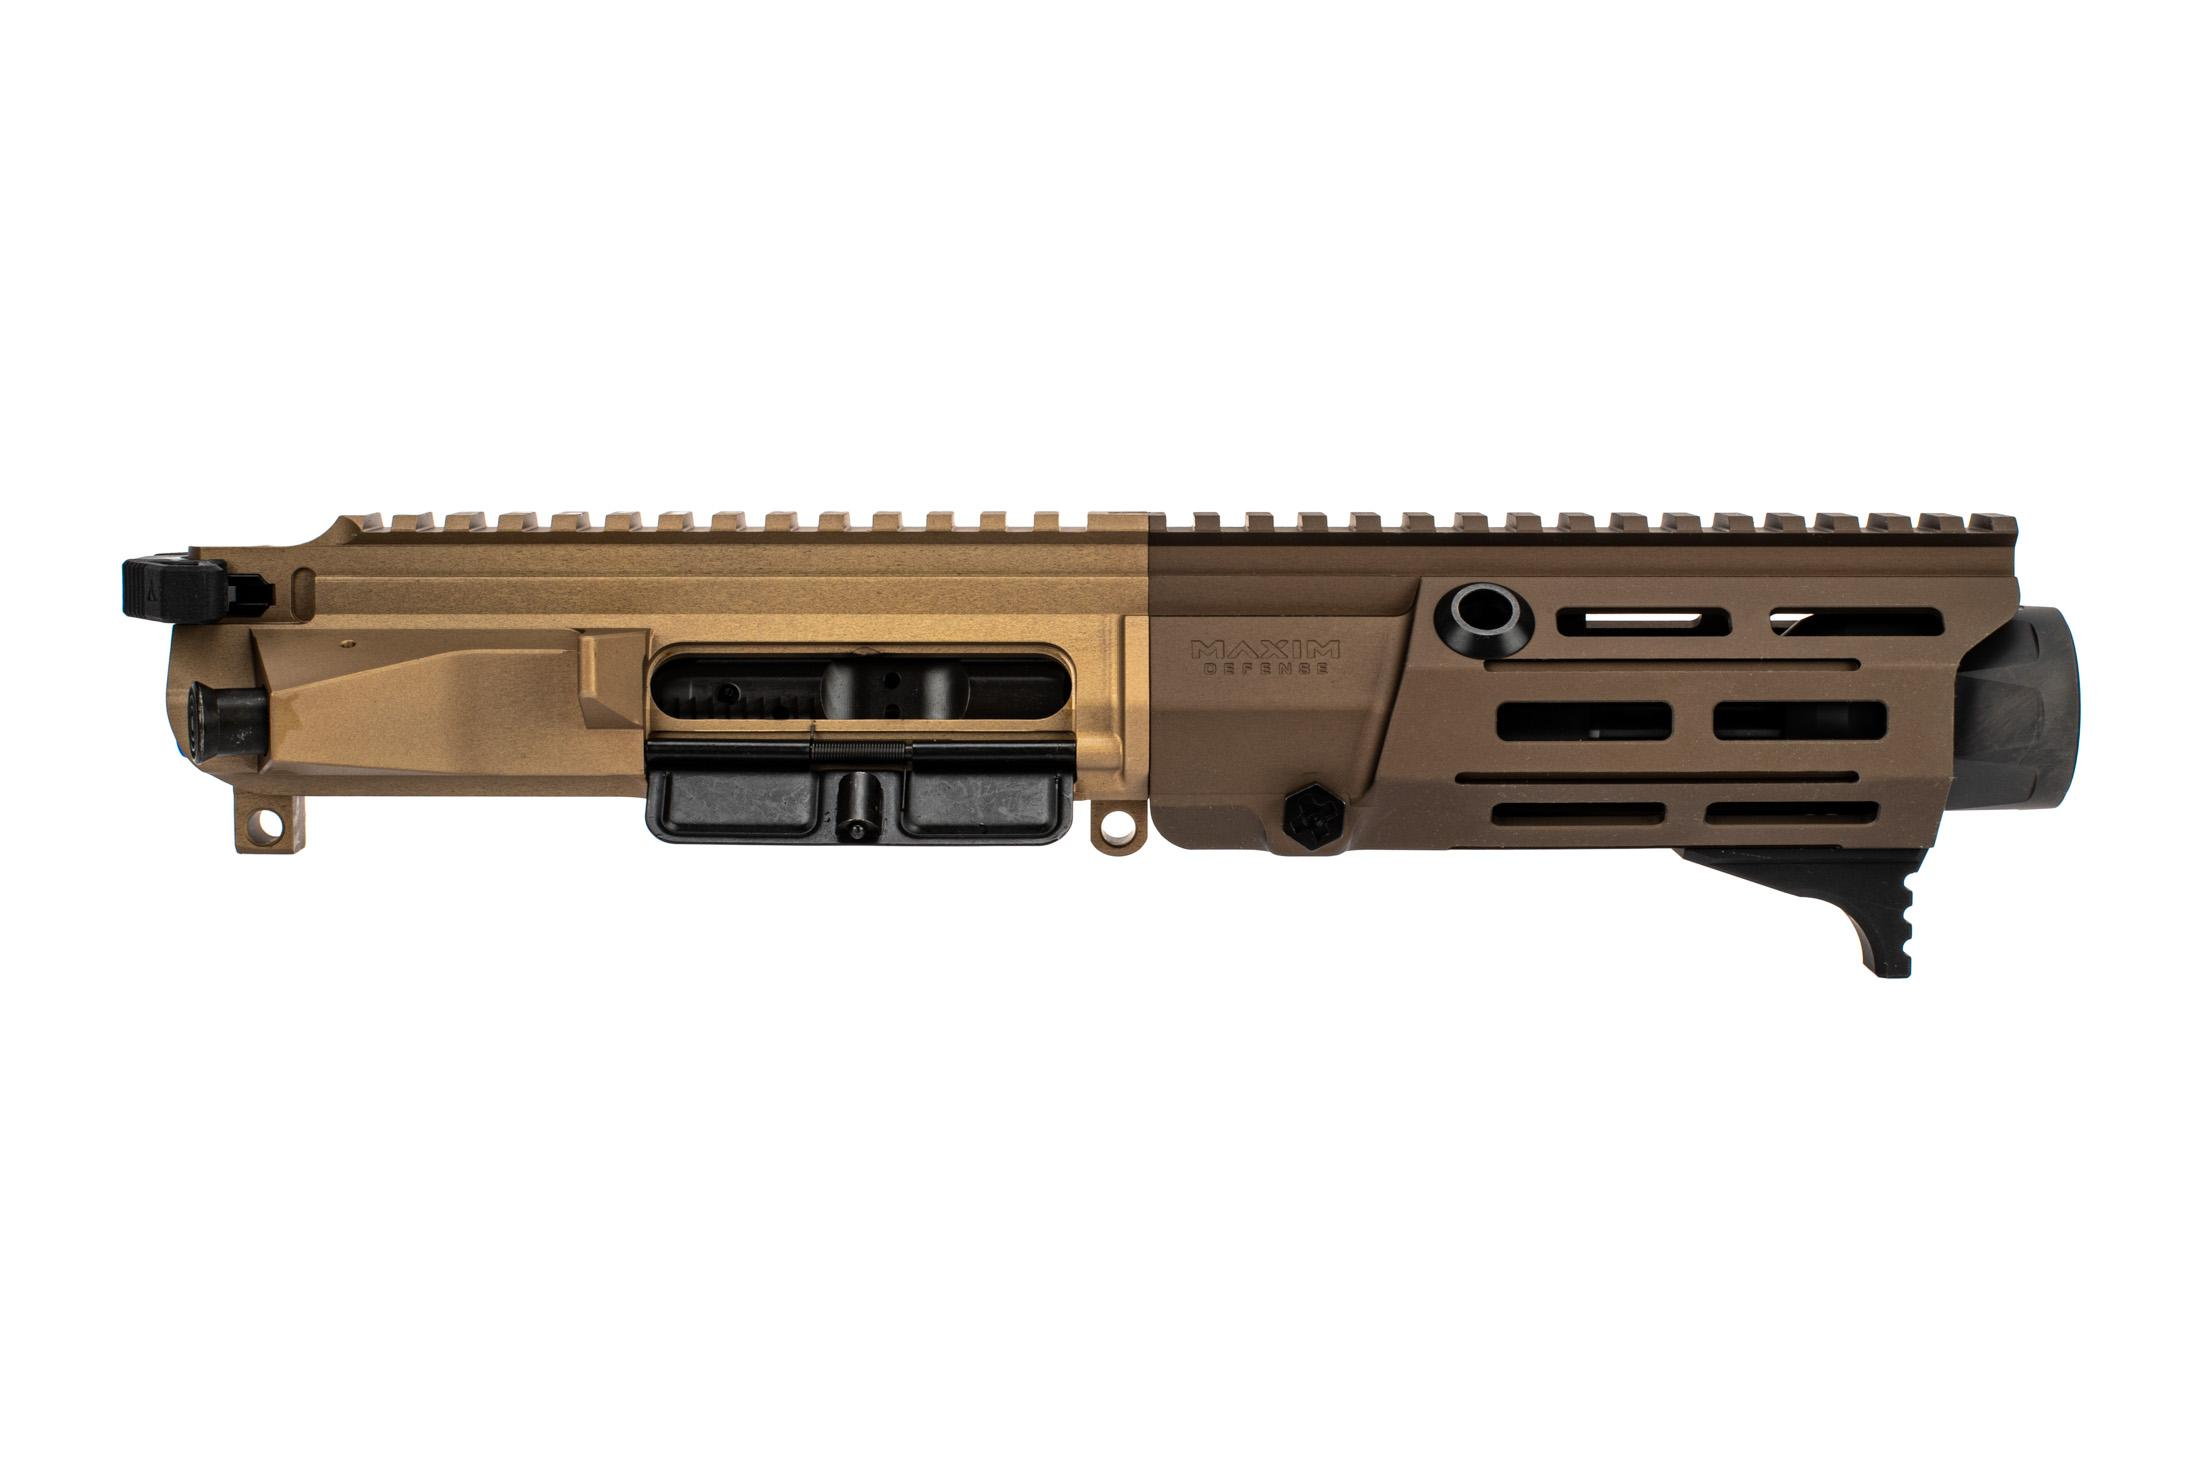 Maxim Defense PDX 7.62x39 AR15 Pistol Kit features a flat dark earth anodized finish